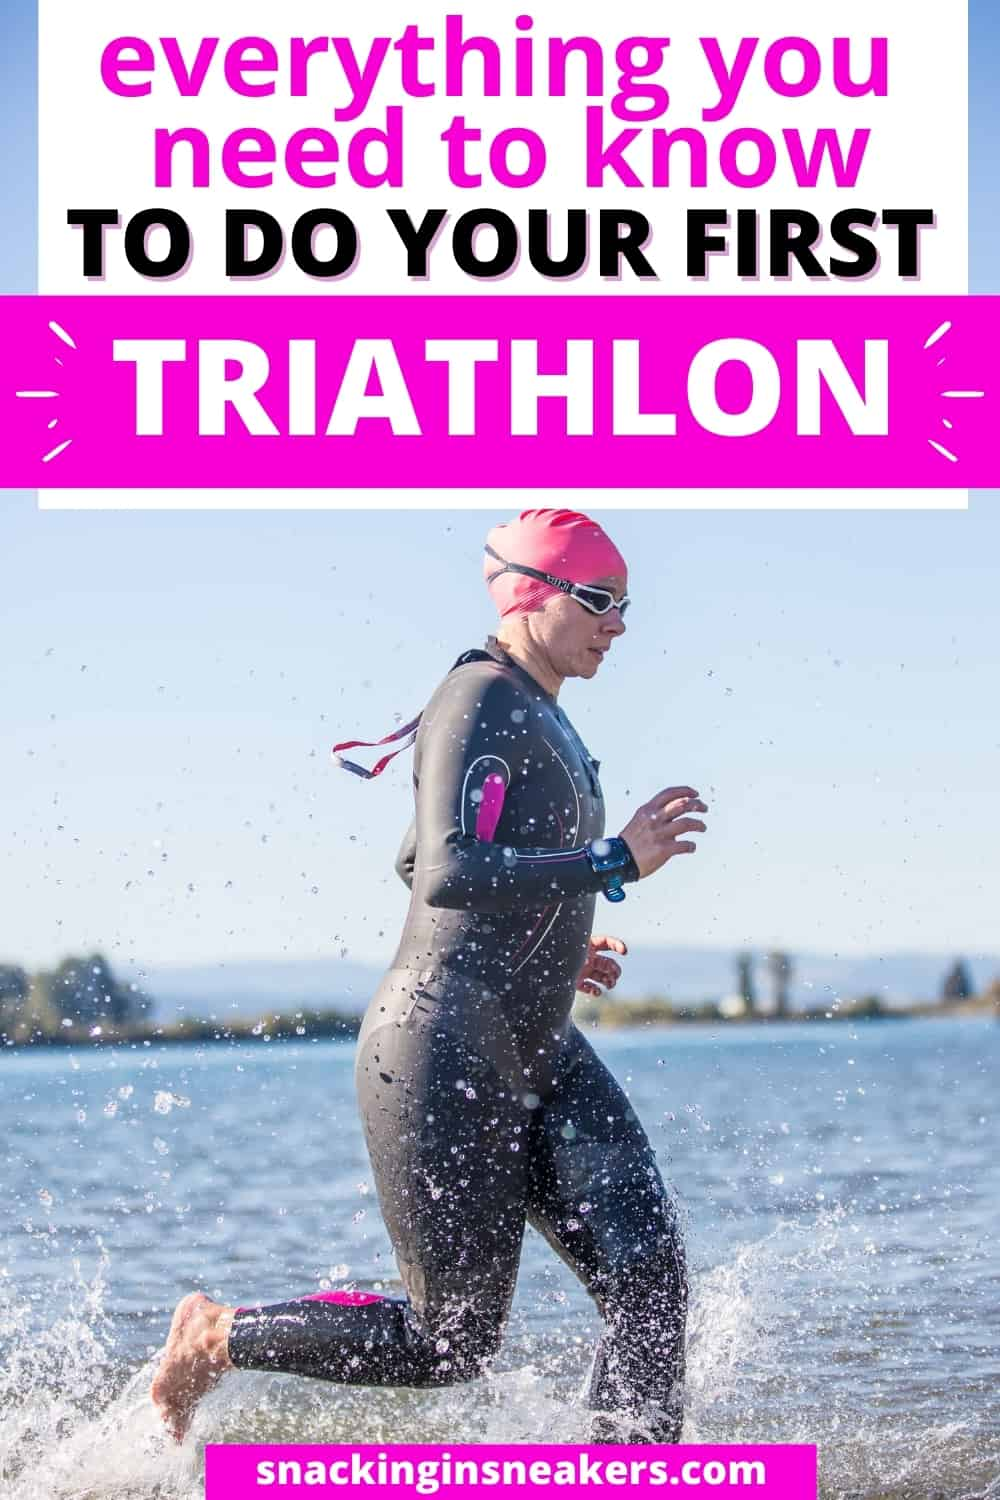 A woman in a wetsuit running into the water to do her first triathlon.